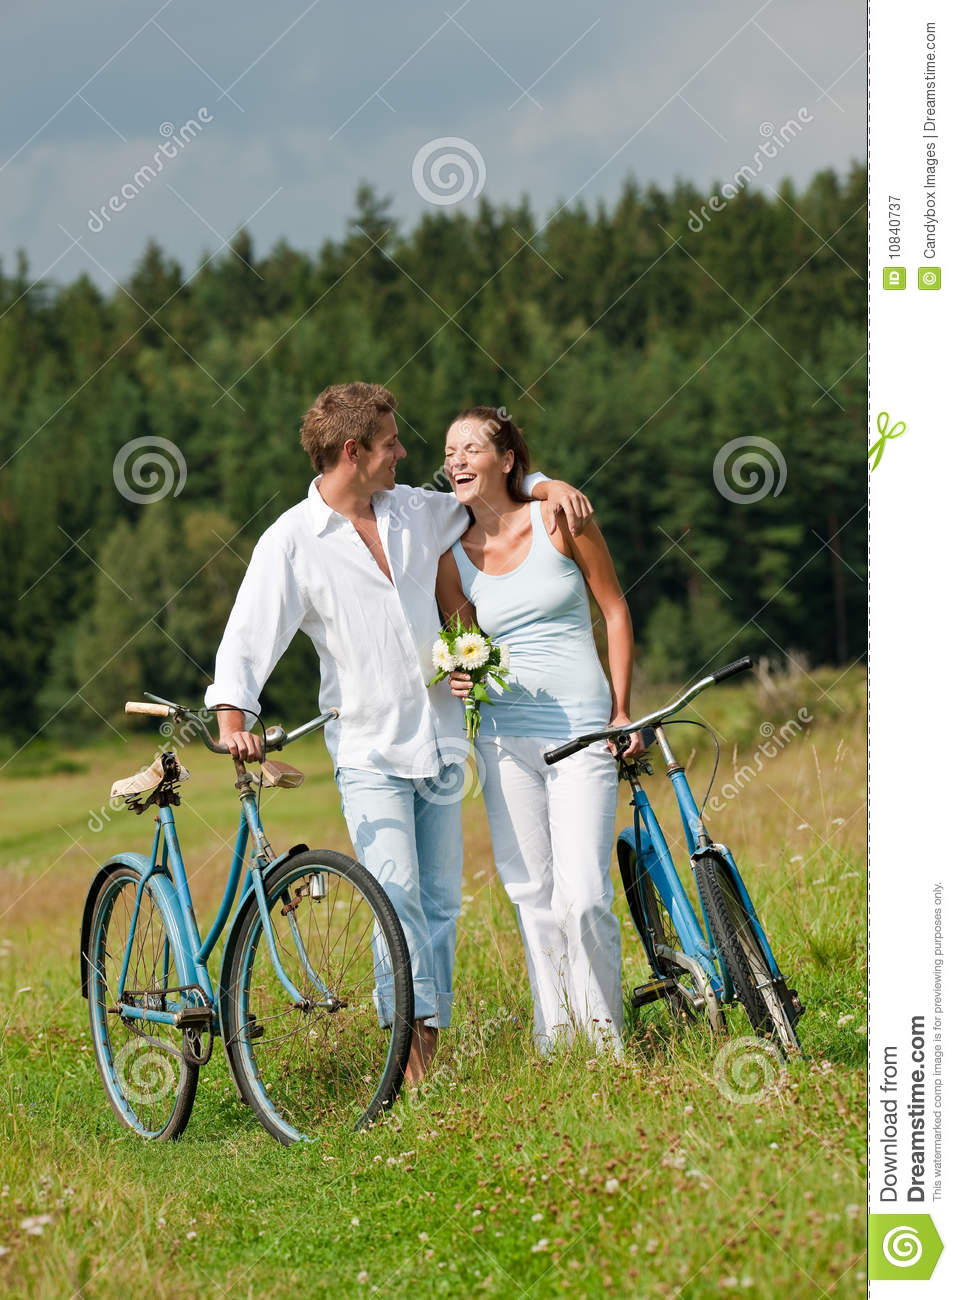 Summer - Romantic Couple With Bike In Meadow Royalty Free ...